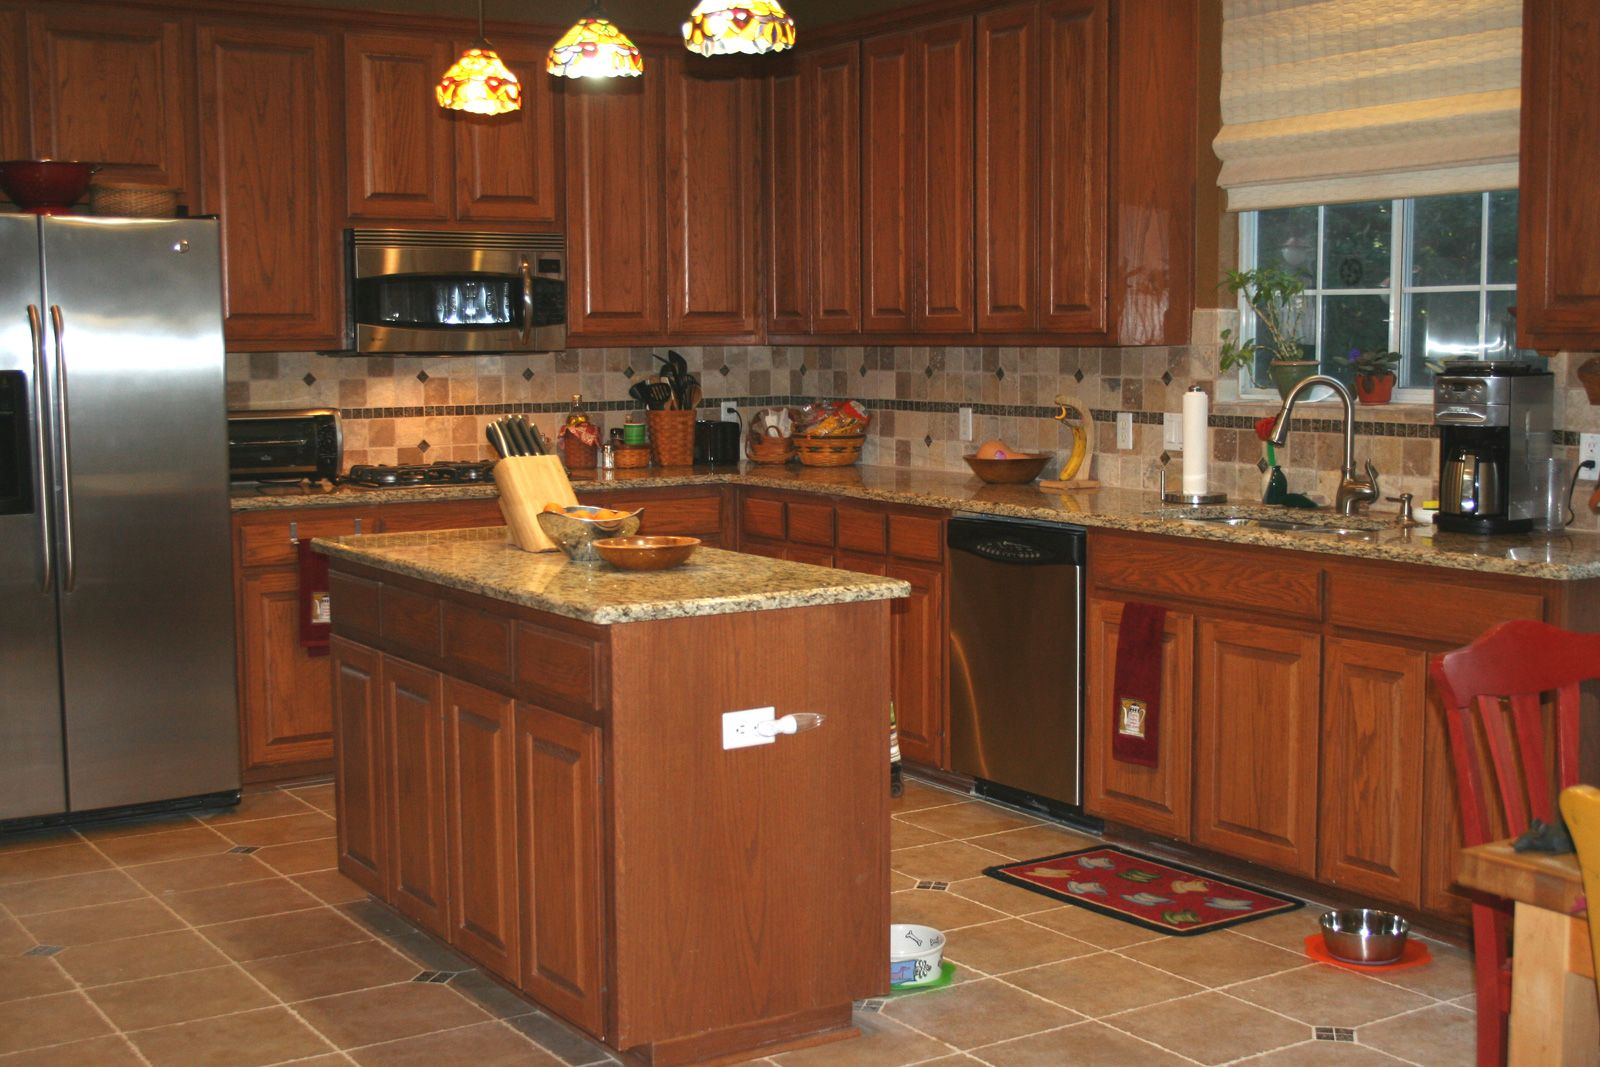 Back Splash Designs For Kitchen With Beige And Brown Granite Counter Tops Oak Cabinets